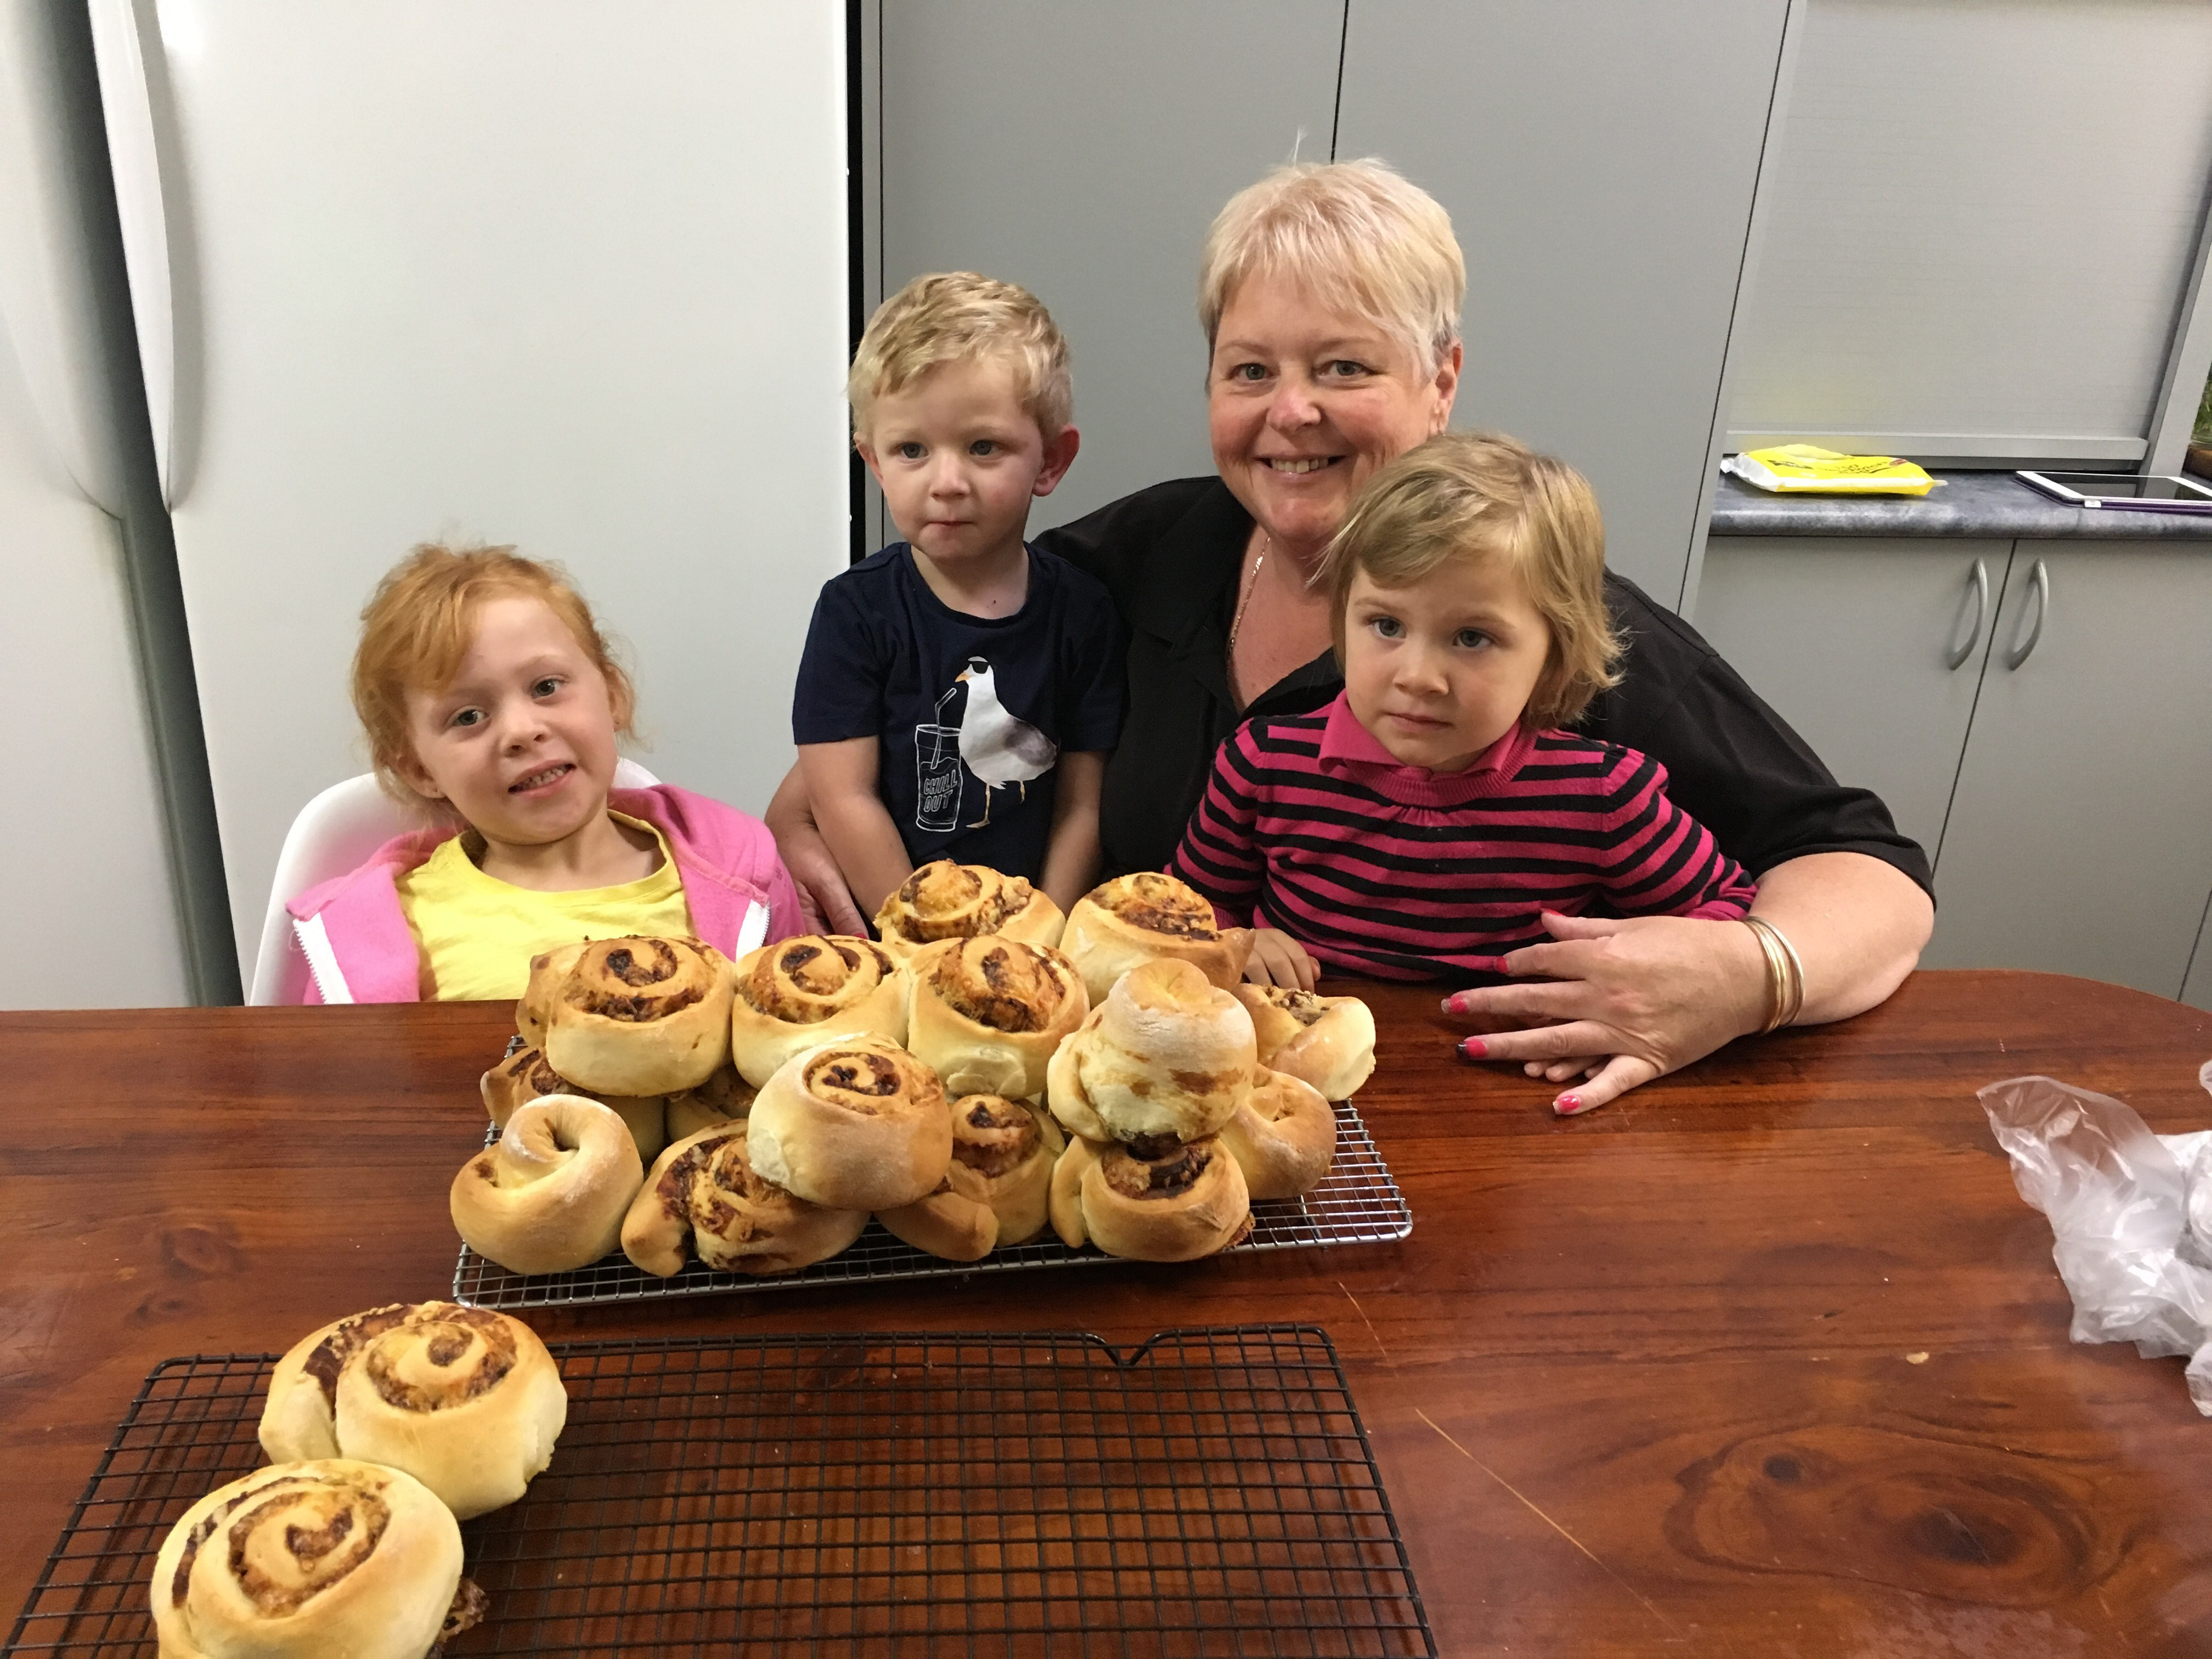 Family Day Care Educator Tracey Jones with Savannah, Ashton and Indianna enjoying the rewards of their cooking experience